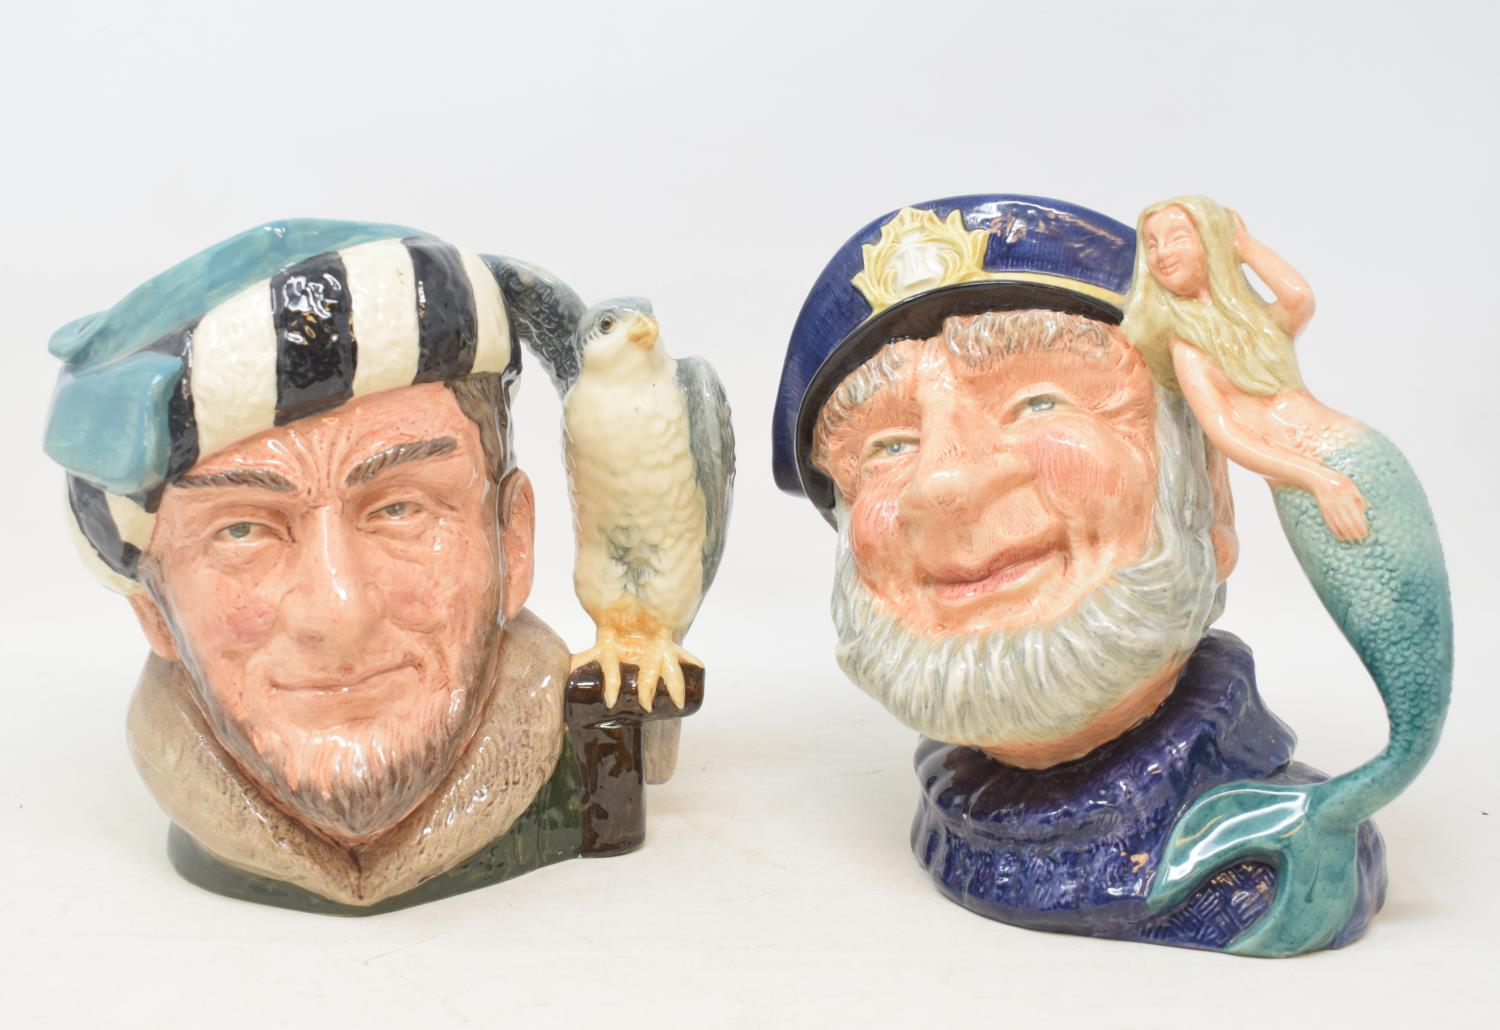 Lot 27 - Assorted Royal Doulton character jugs, figures, commemorative and other ceramics, a blue glass